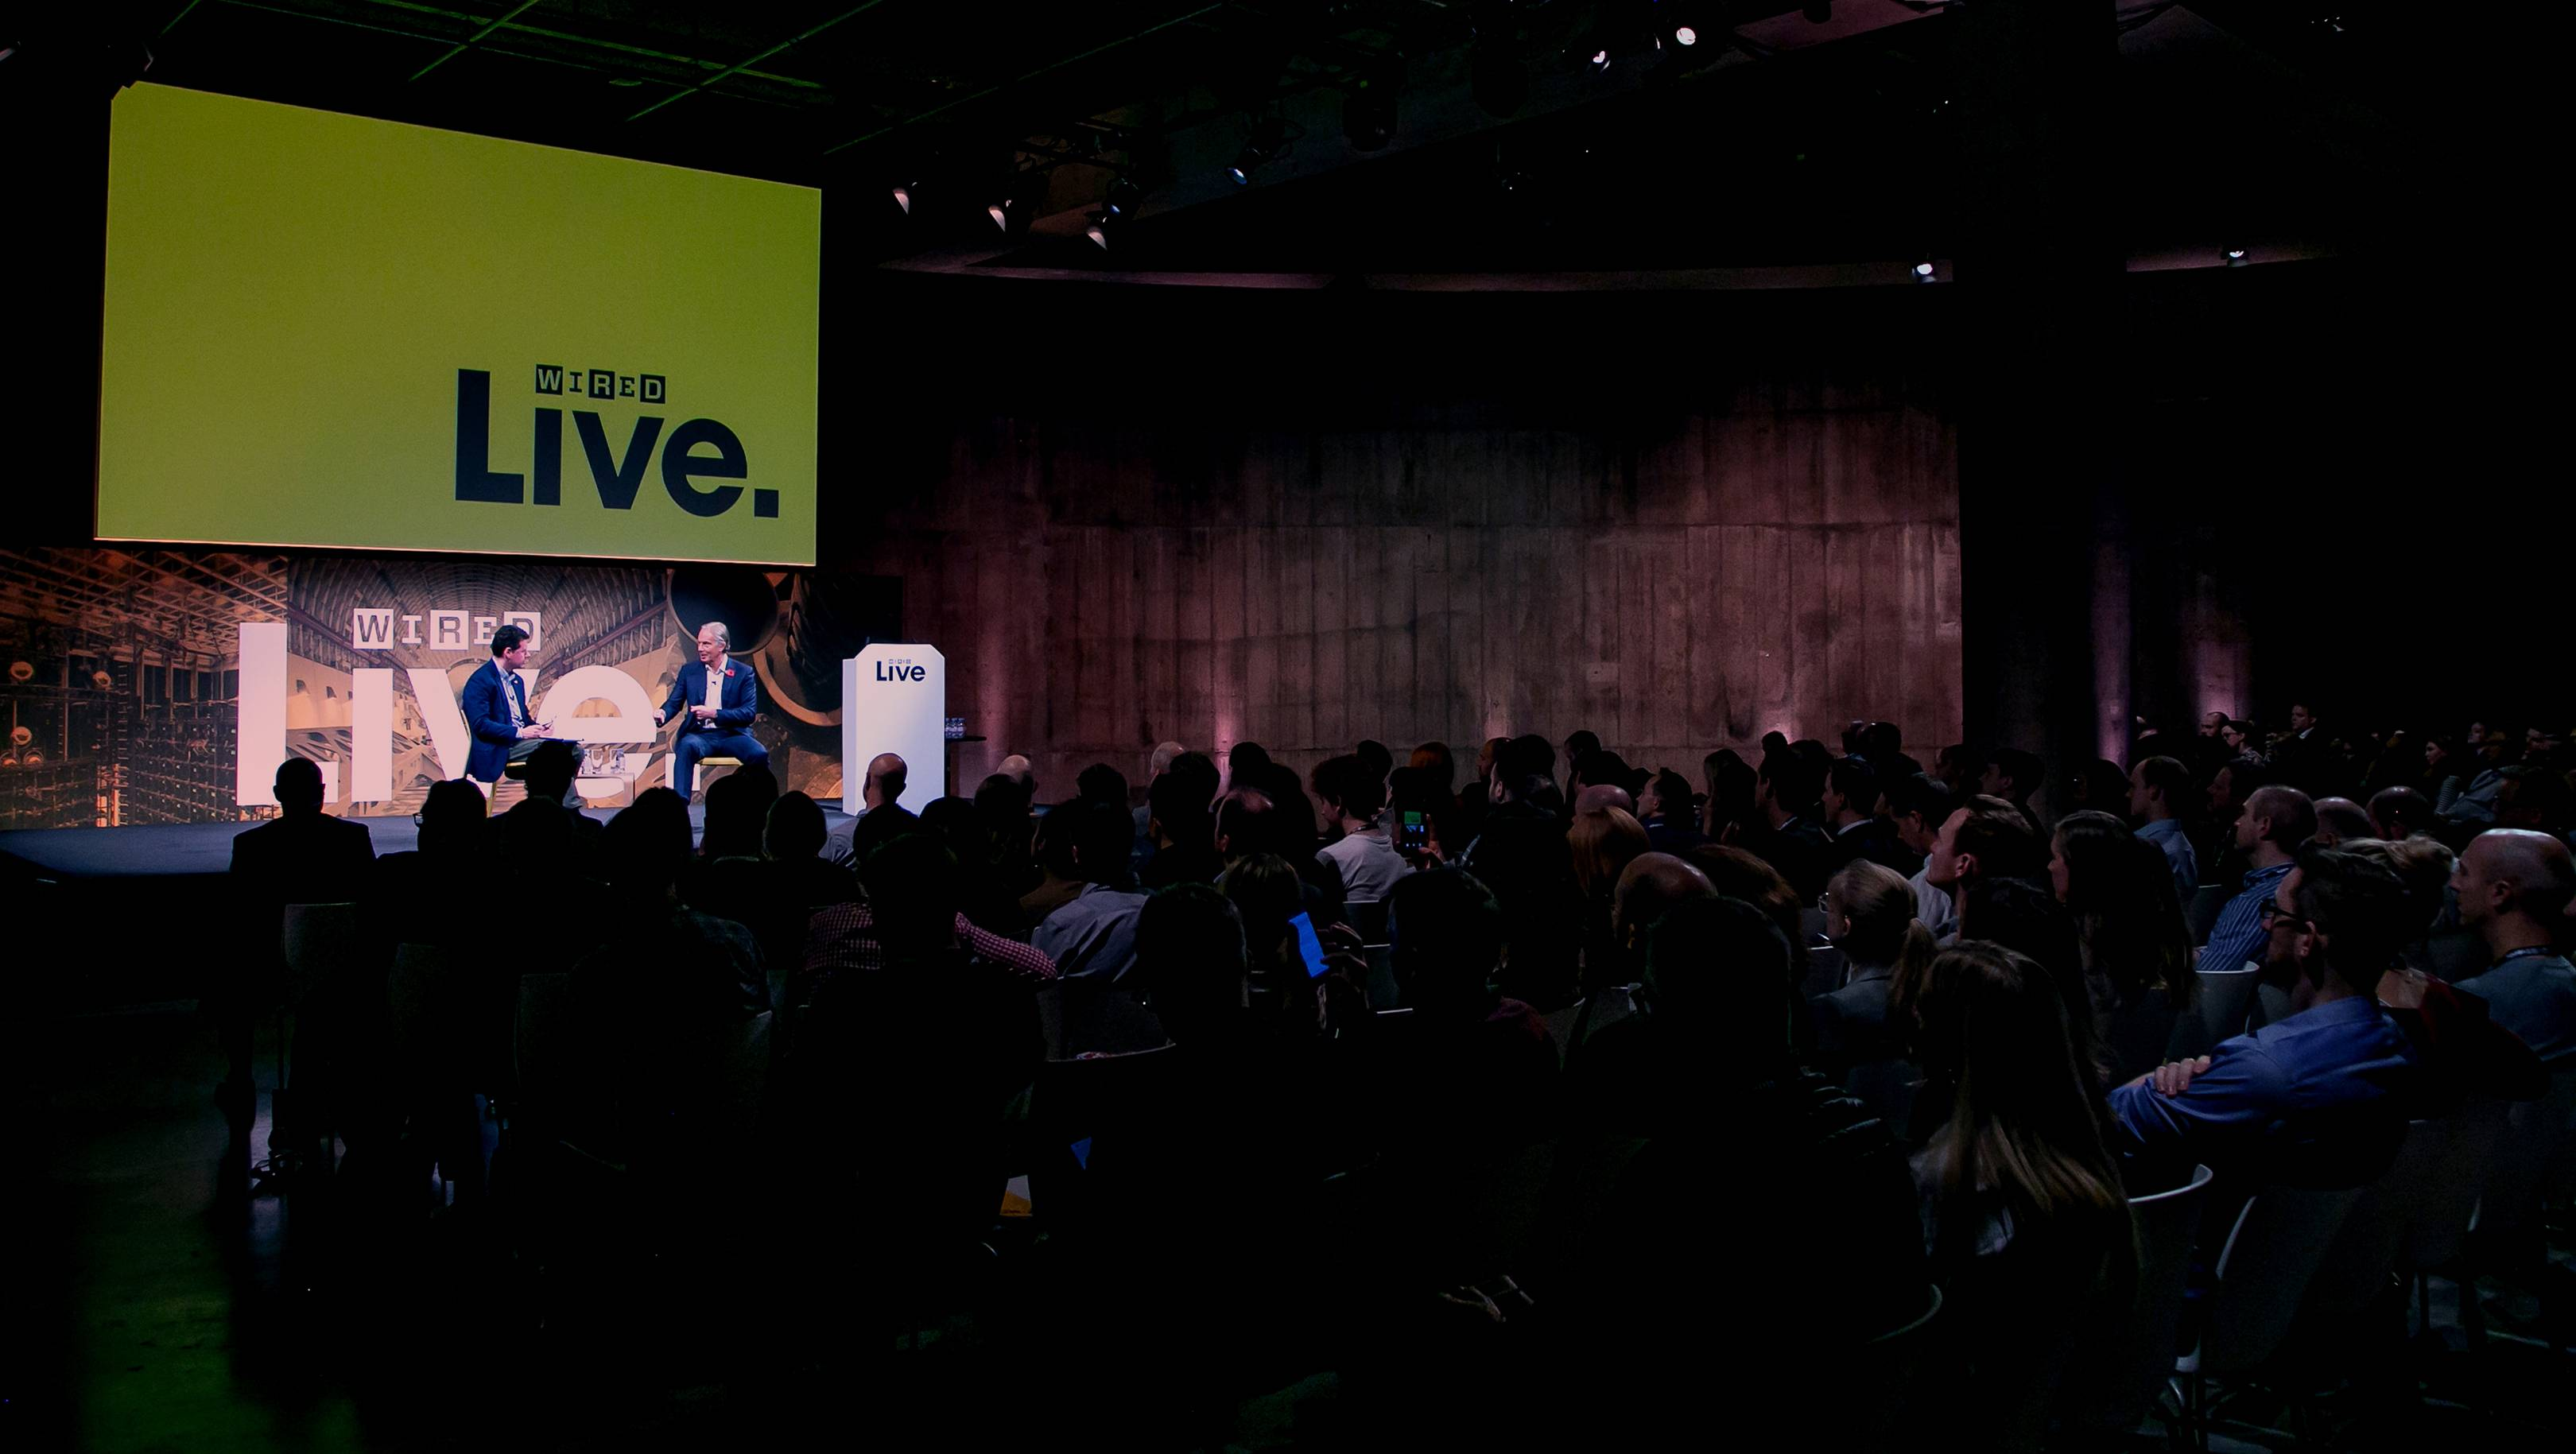 WIRED LIVE roundup